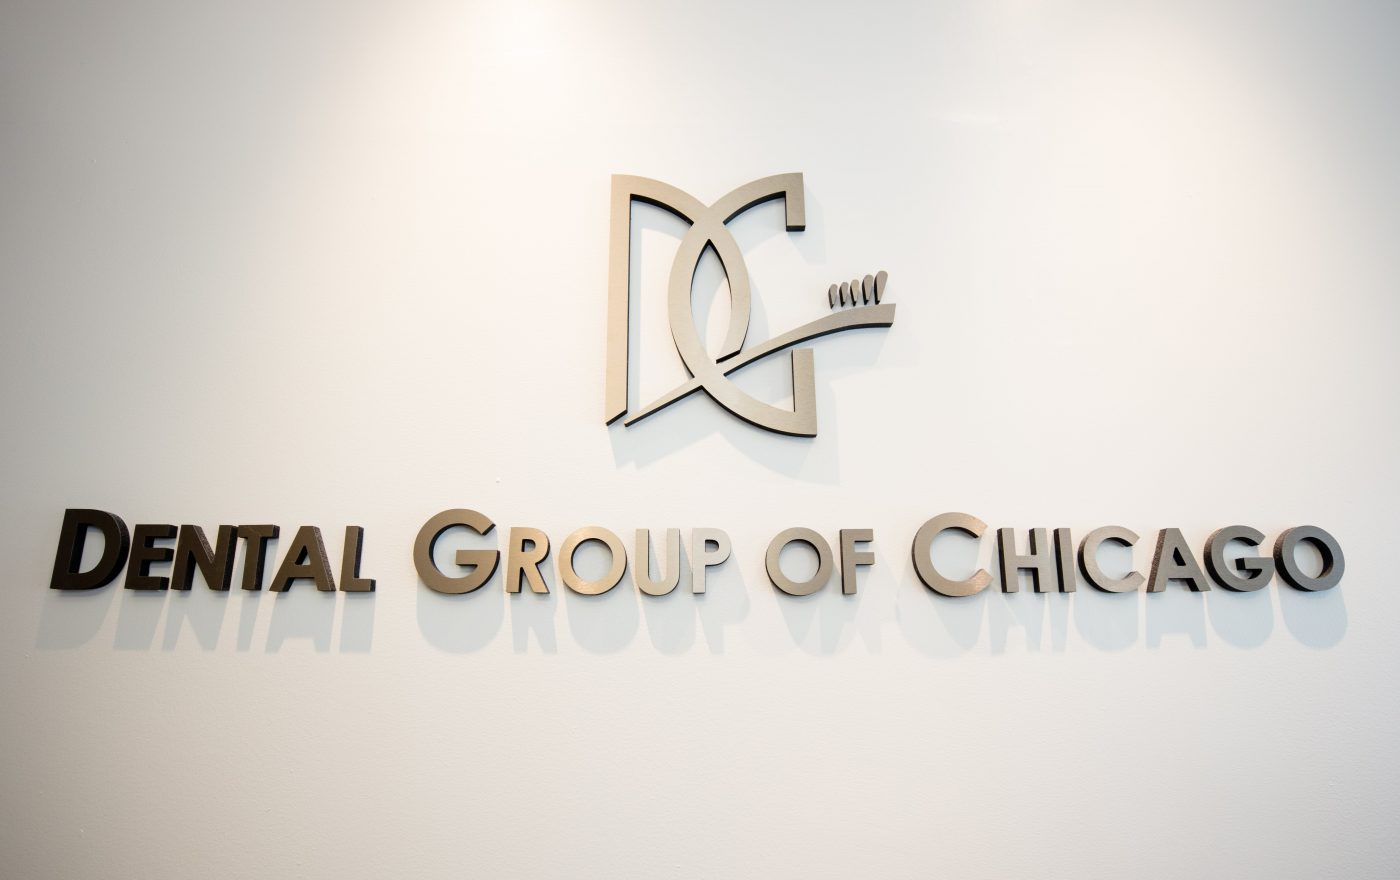 Dental Group of Chicago Logo on the Wall